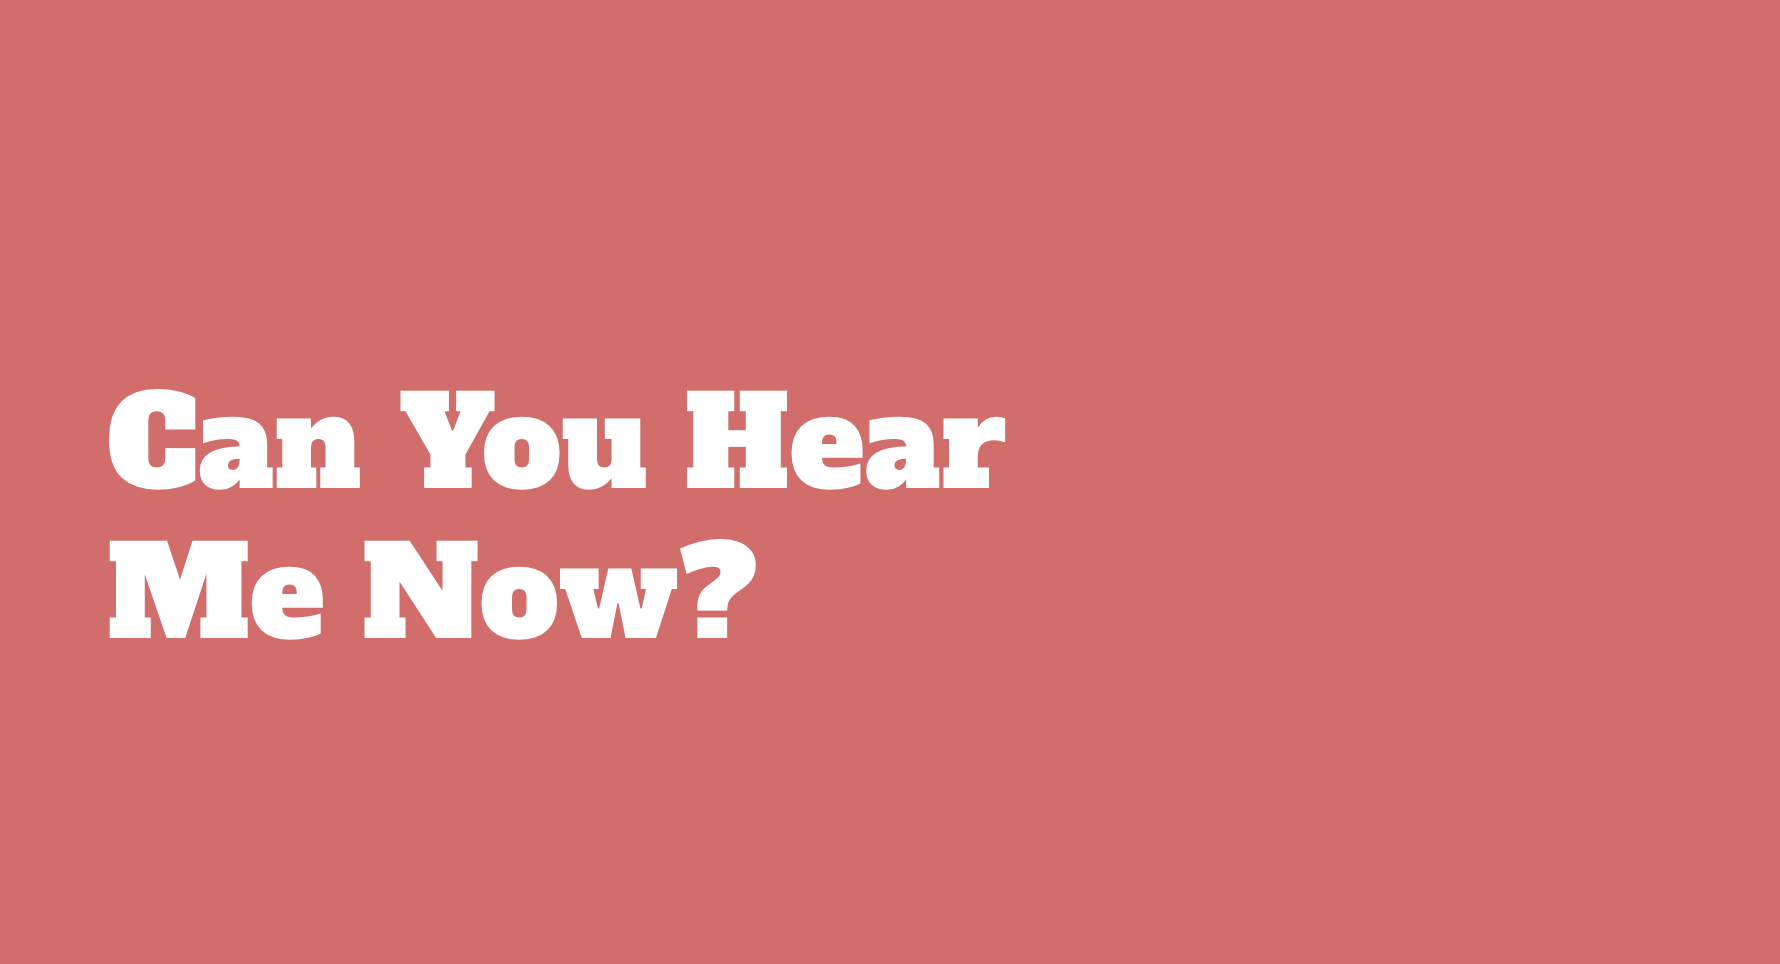 Online Game: Can You Hear Me Now?